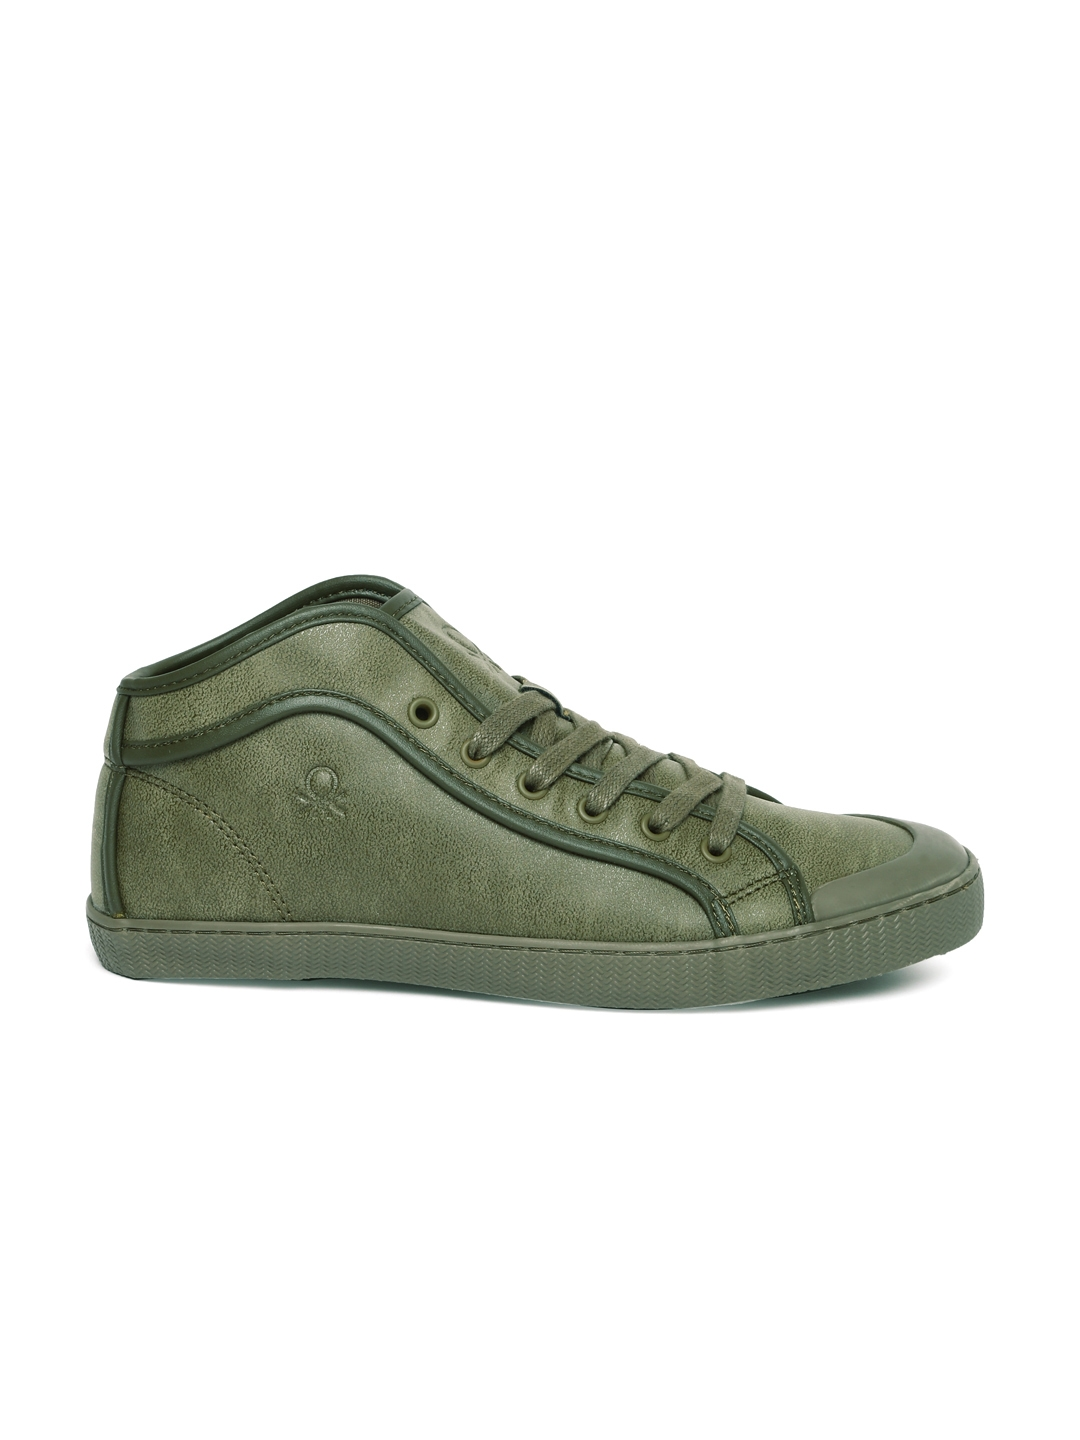 Buy United Colors Of Benetton Men Olive Green Sneakers Casual